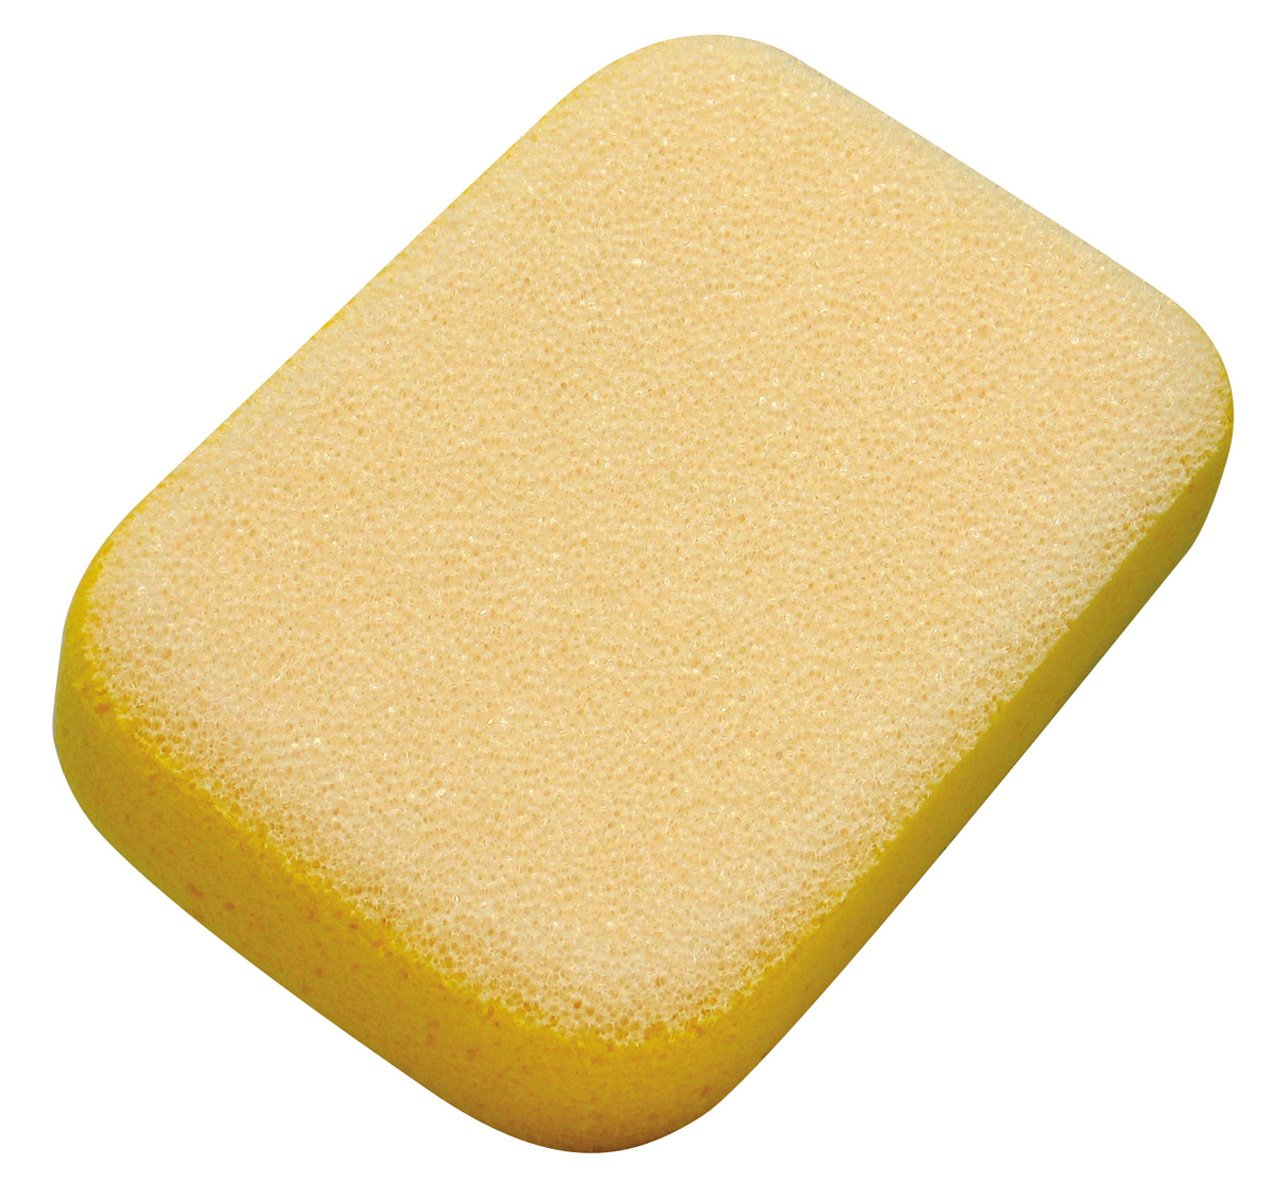 M-D Building Products 49156 Scrubbing Sponge